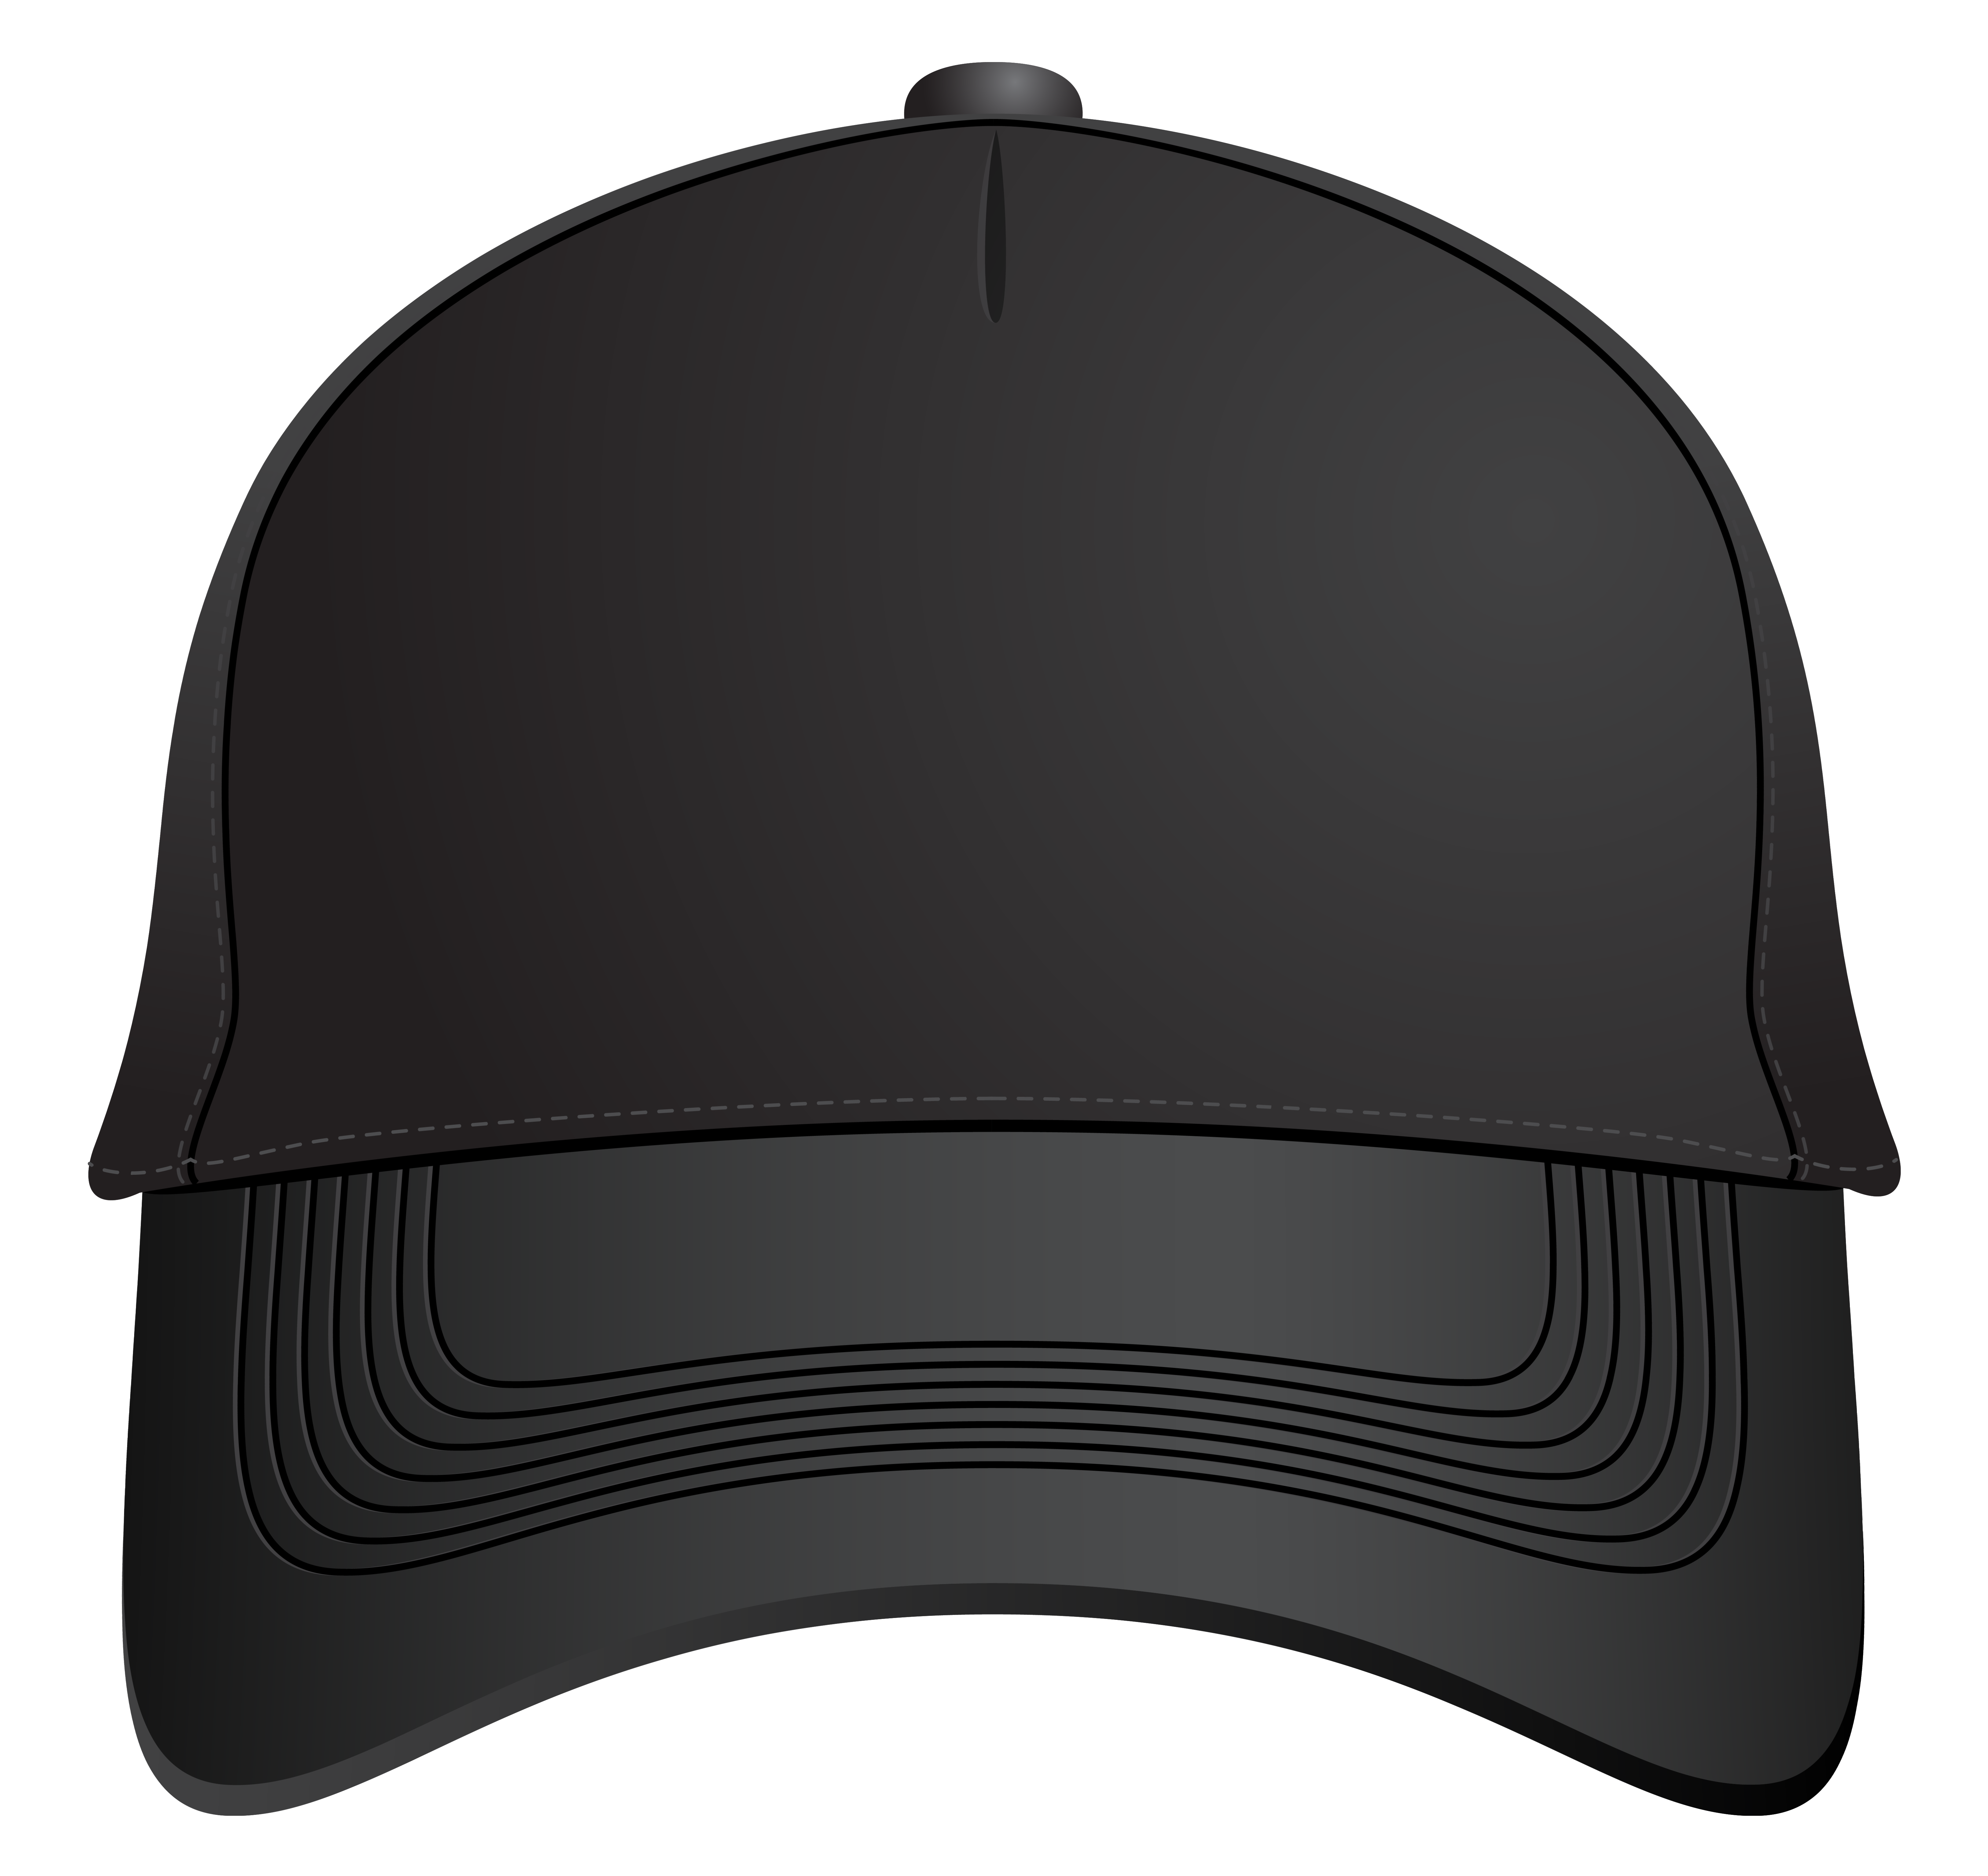 banner transparent Baseball Cap PNG Transparent Baseball Cap